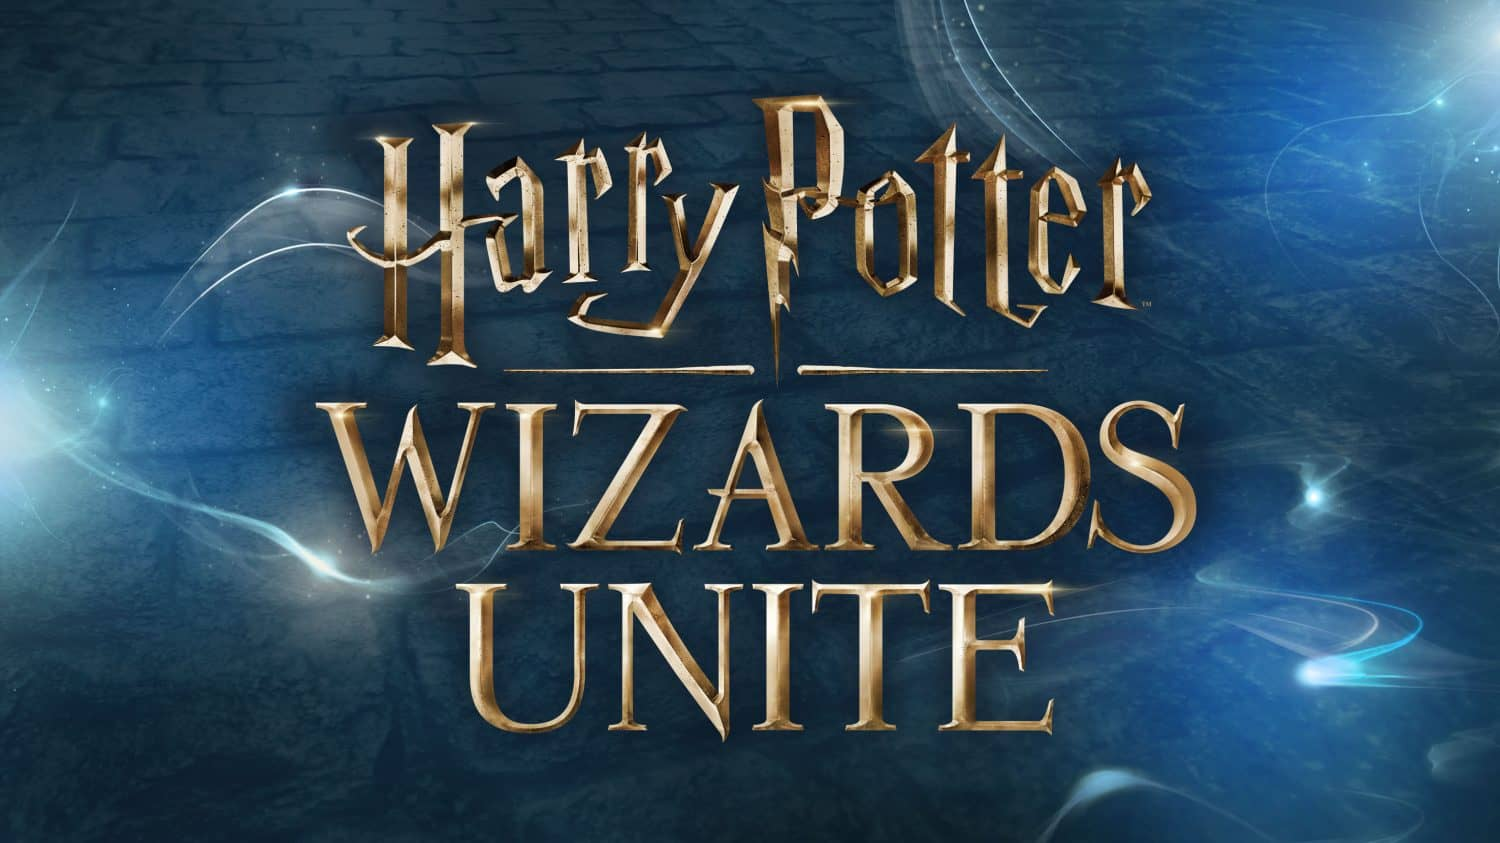 Wizards Unite New Game